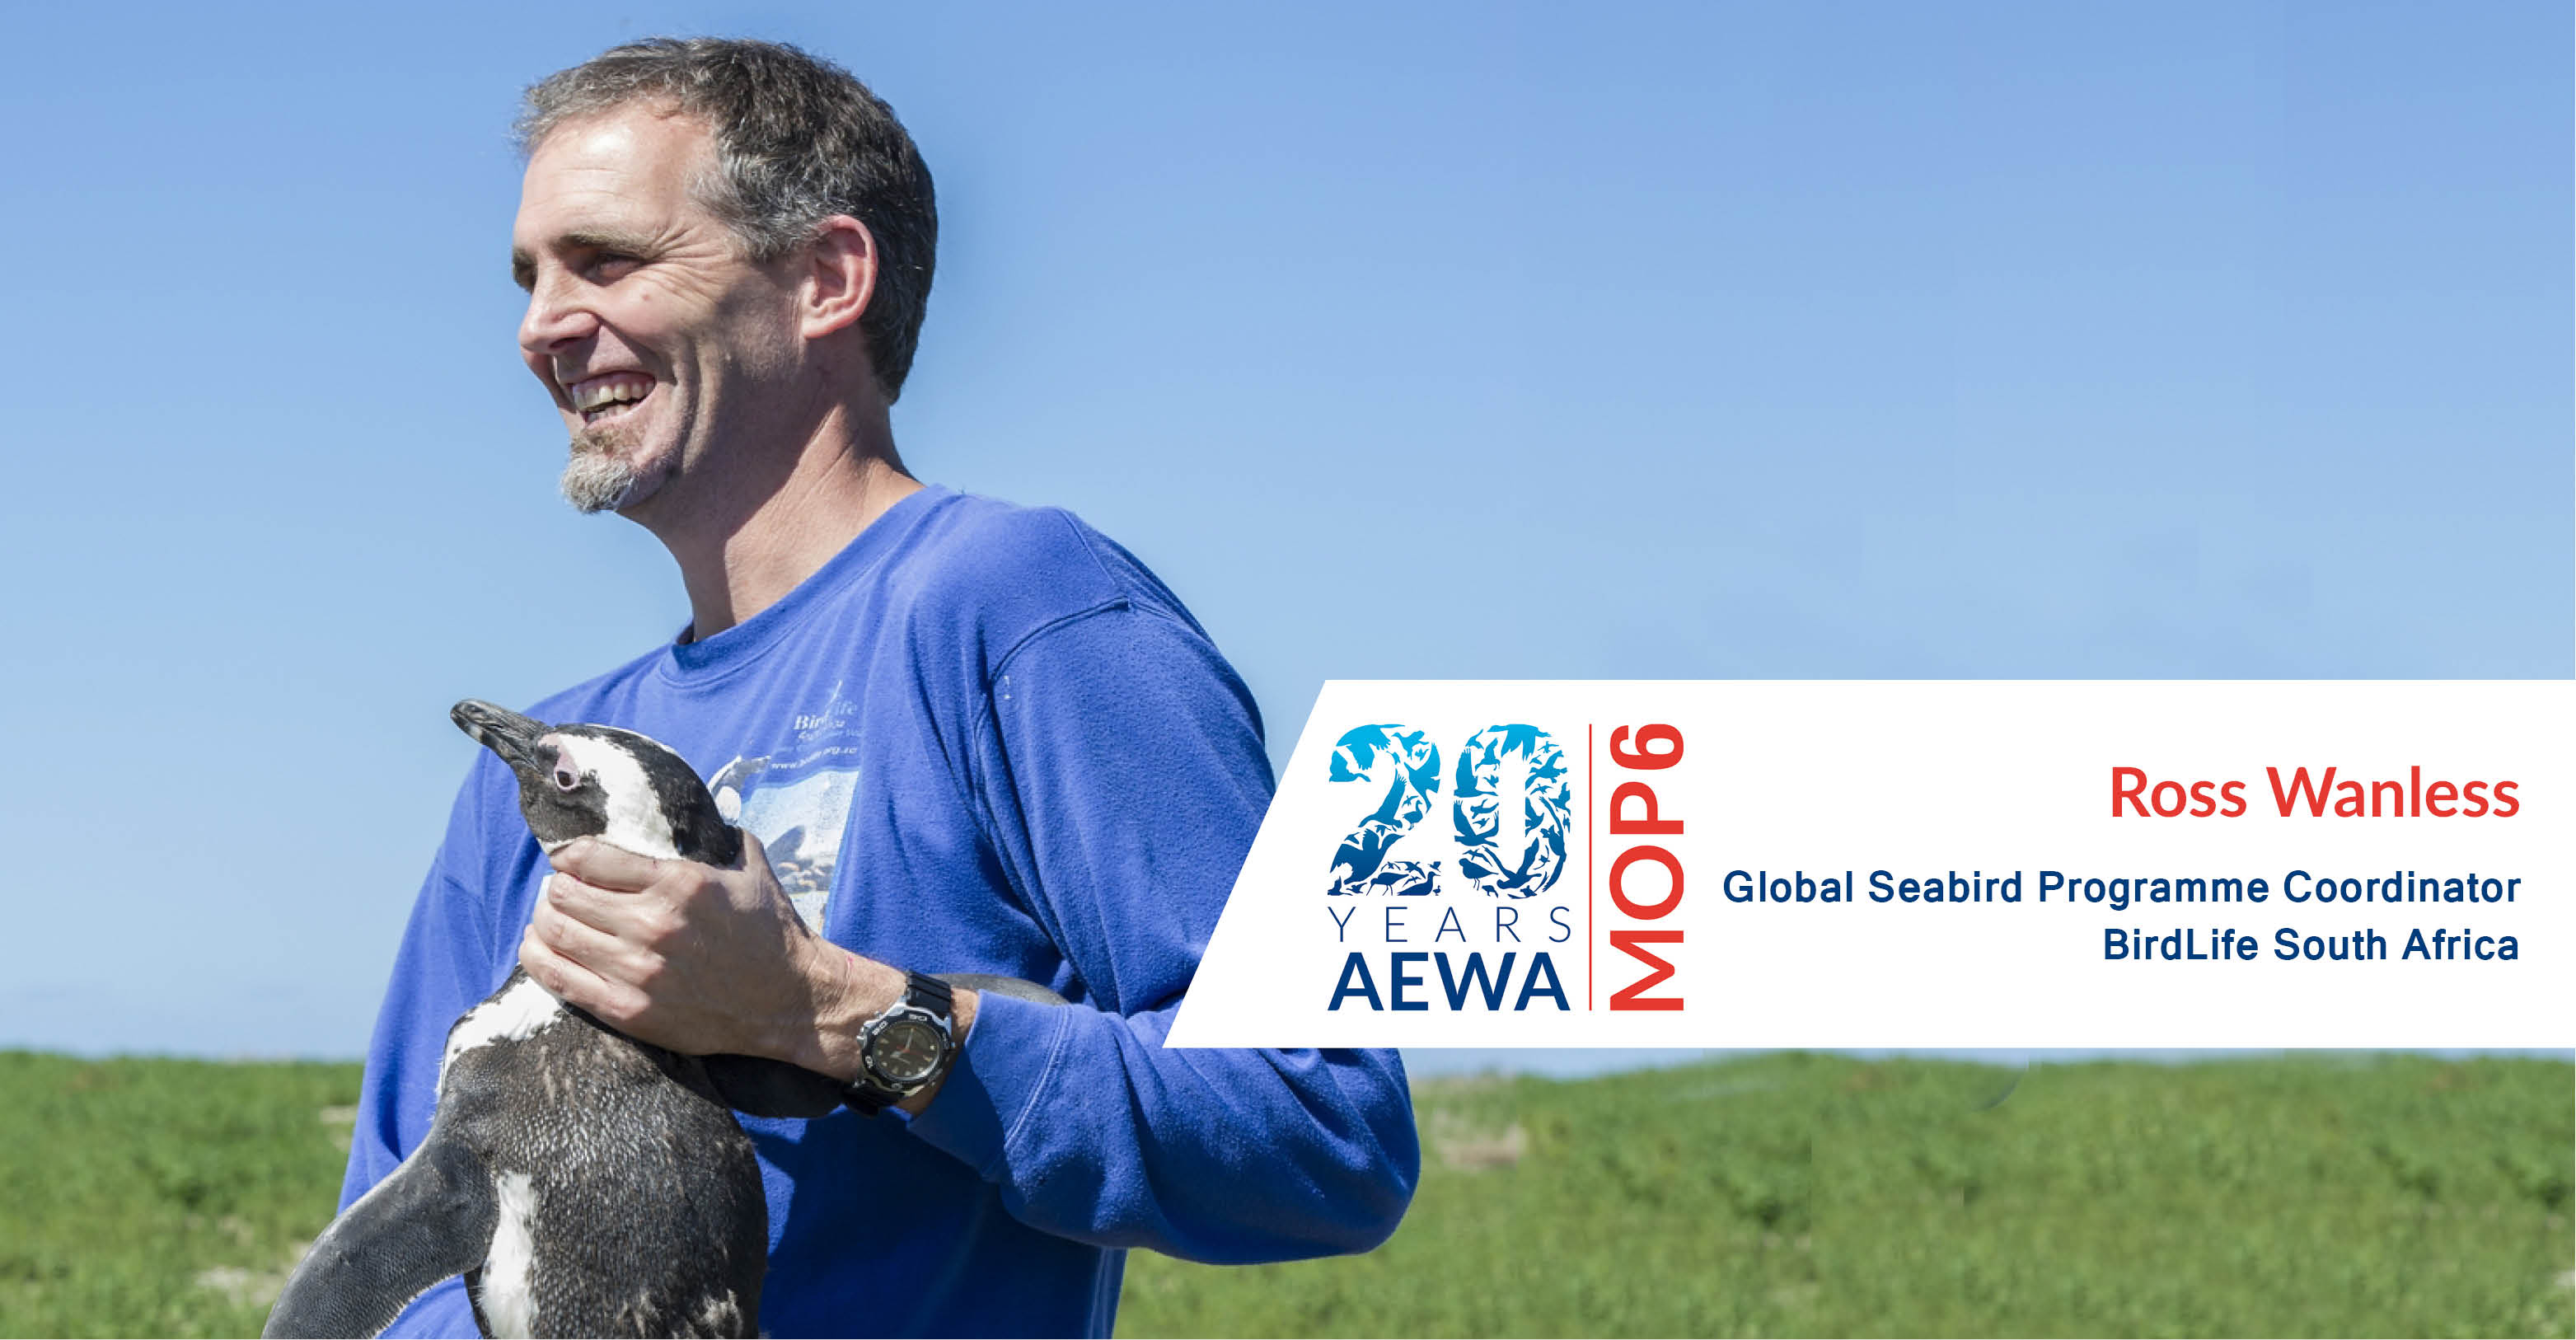 Dr. Ross Wanless, Global Seabird Programme Coordinator, BirdLife South Africa